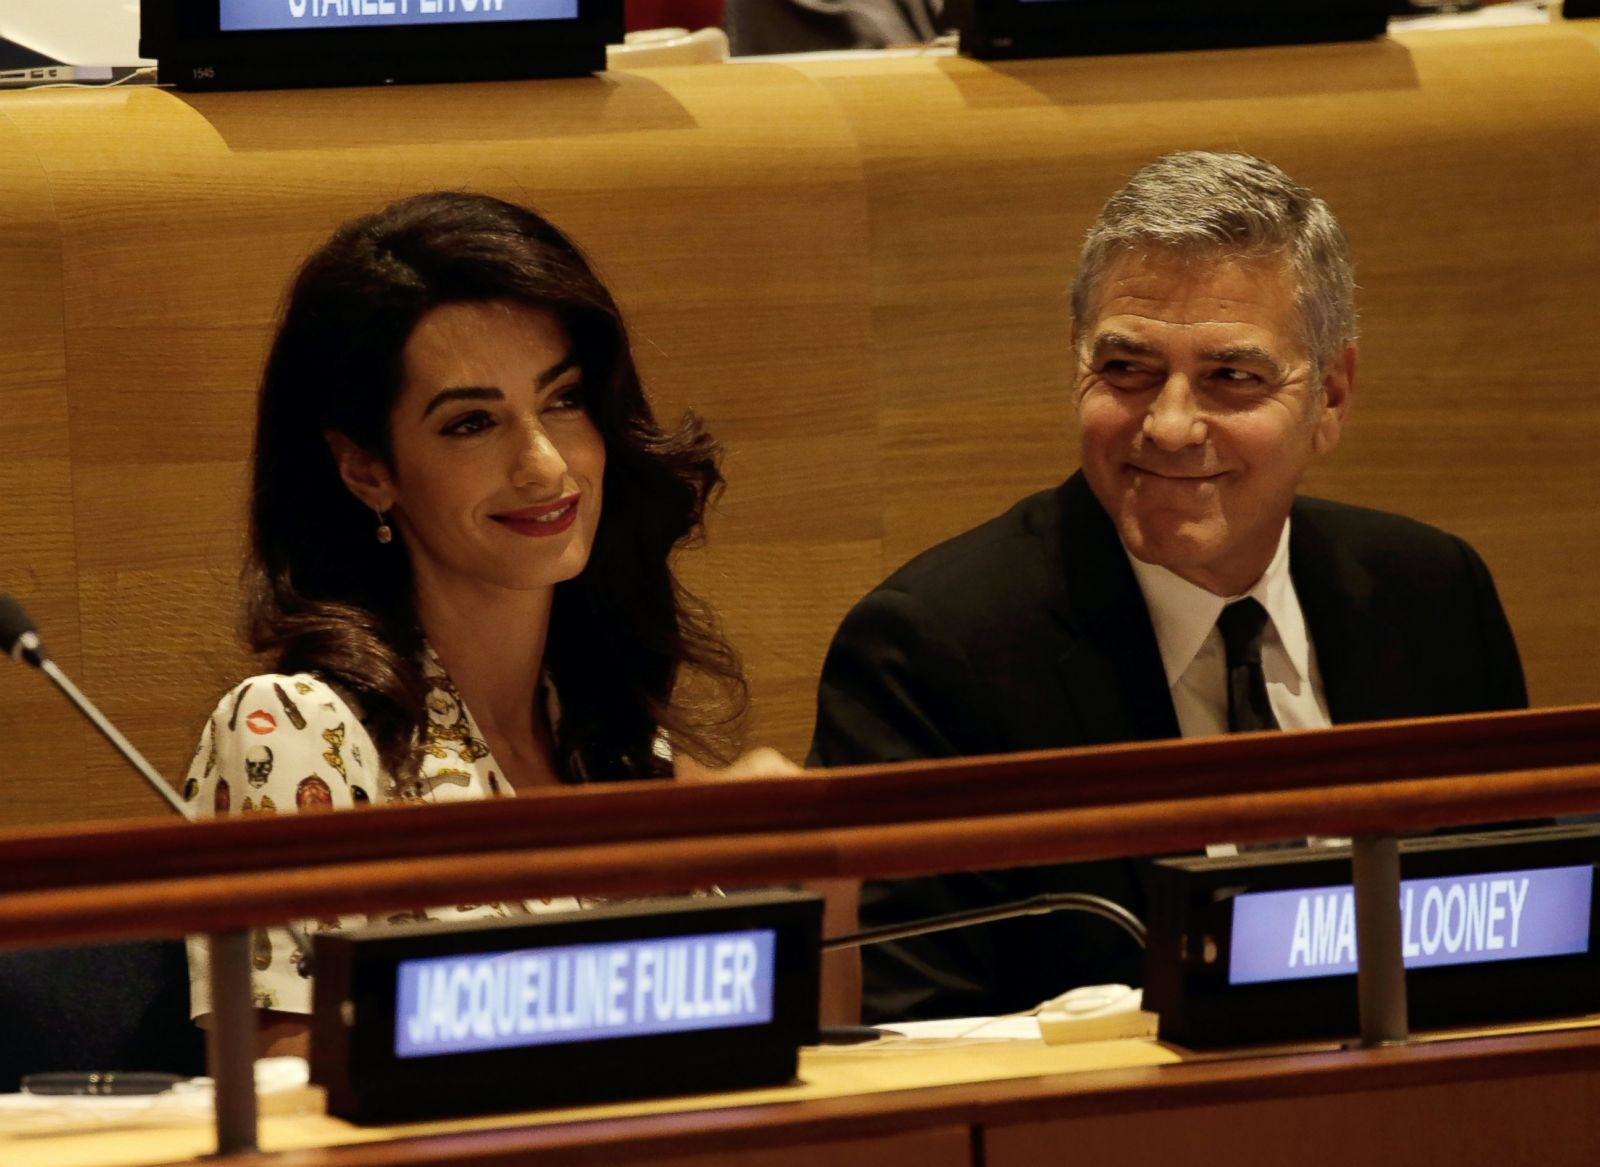 All of Amal Clooney's most glamorous looks Photos - ABC News